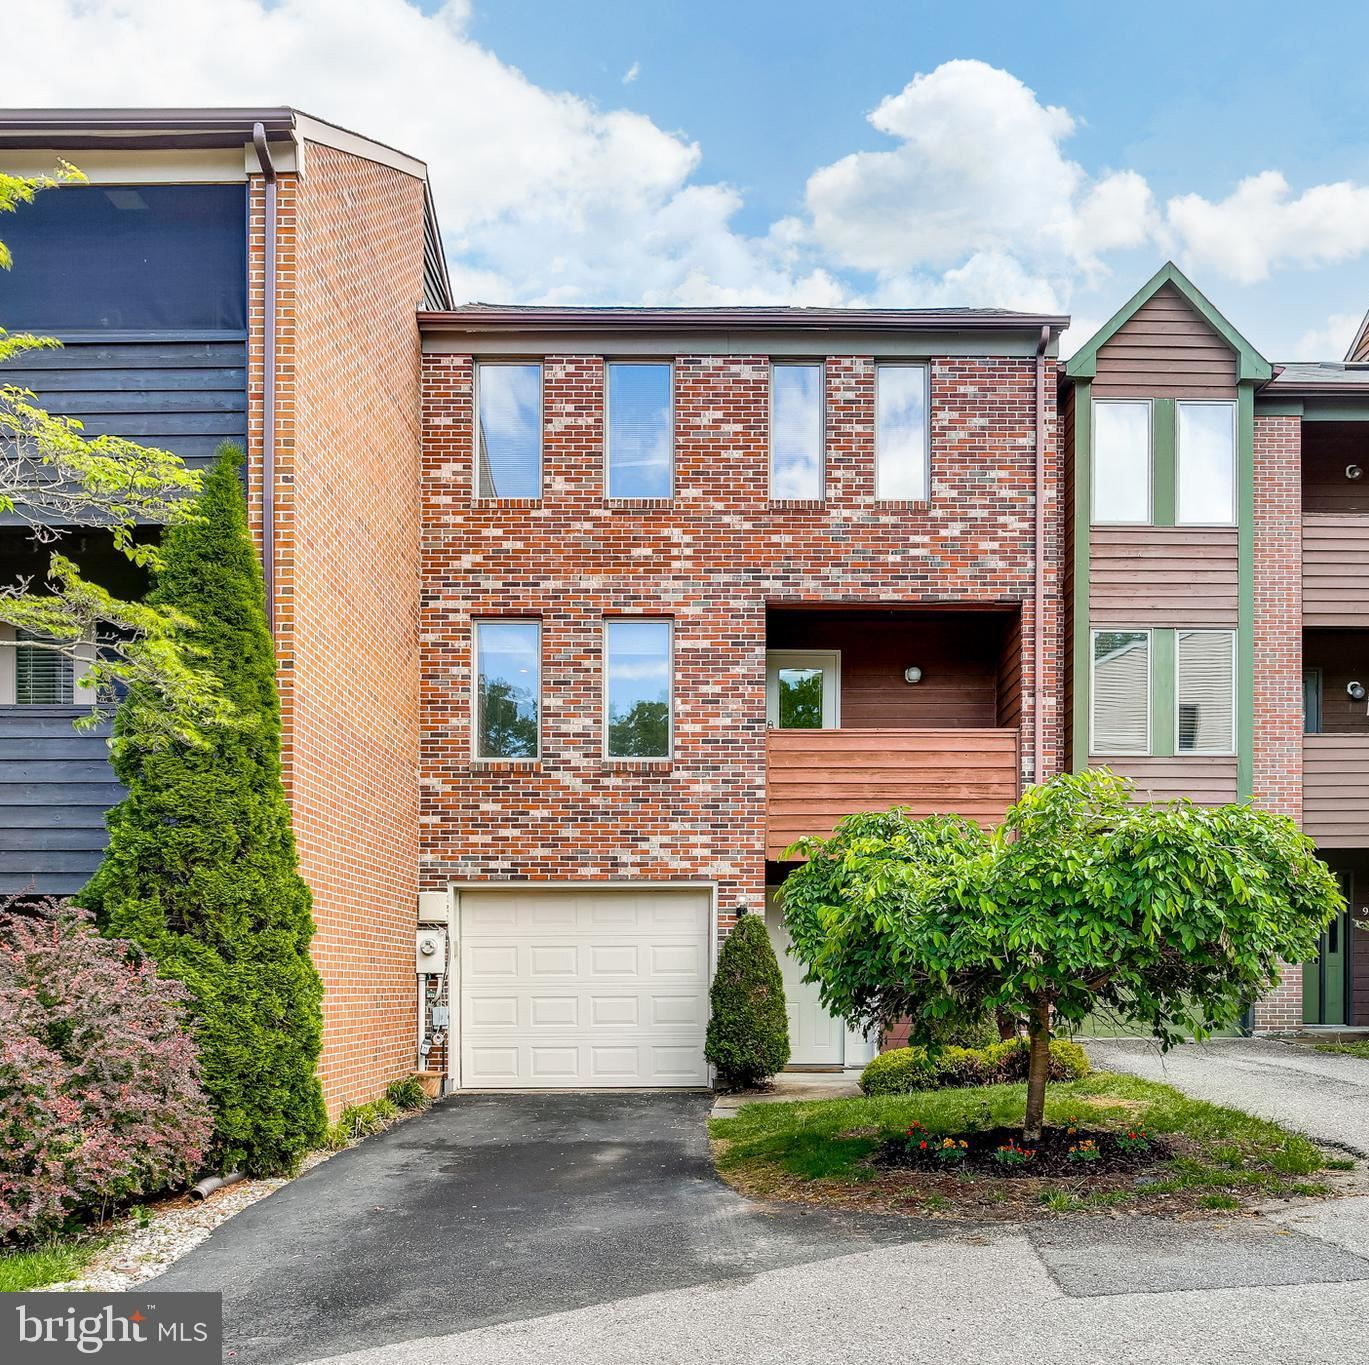 9466 CLOCKTOWER LN, Columbia, MD 21046 - MLS#: MDHW292838